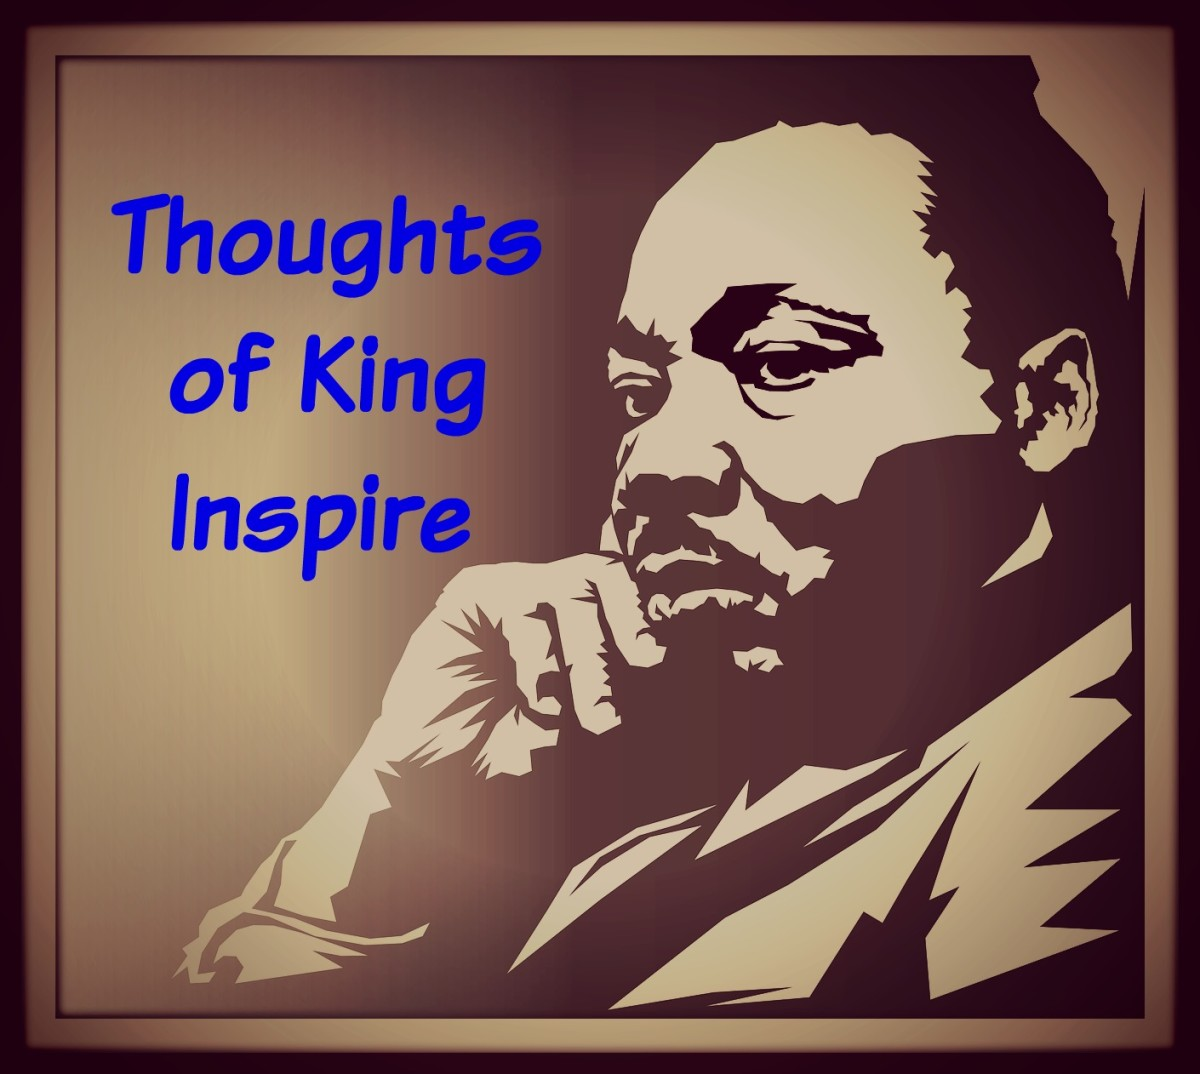 Thoughts of King Inspire: Martin Luther King, Jr. Quotes